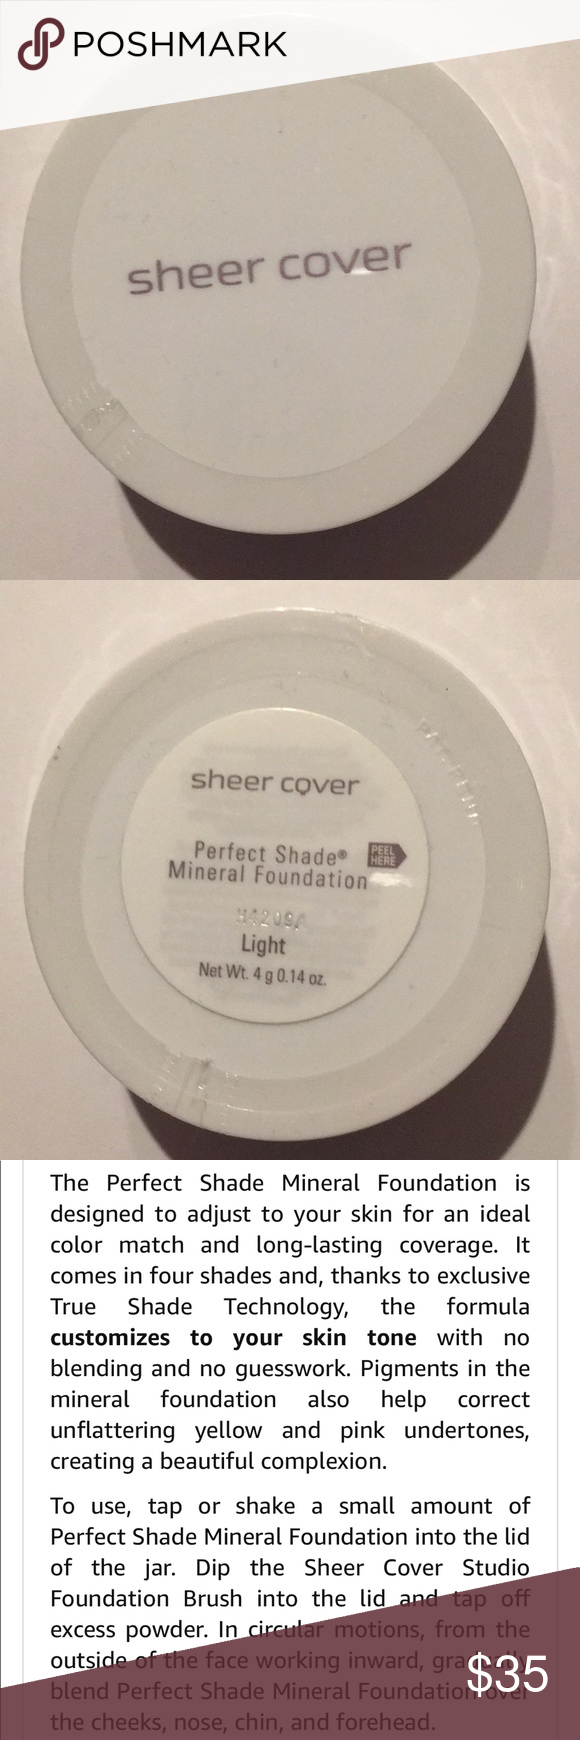 SHEER COVER MINERAL FOUNDATION Sealed New sheer cover